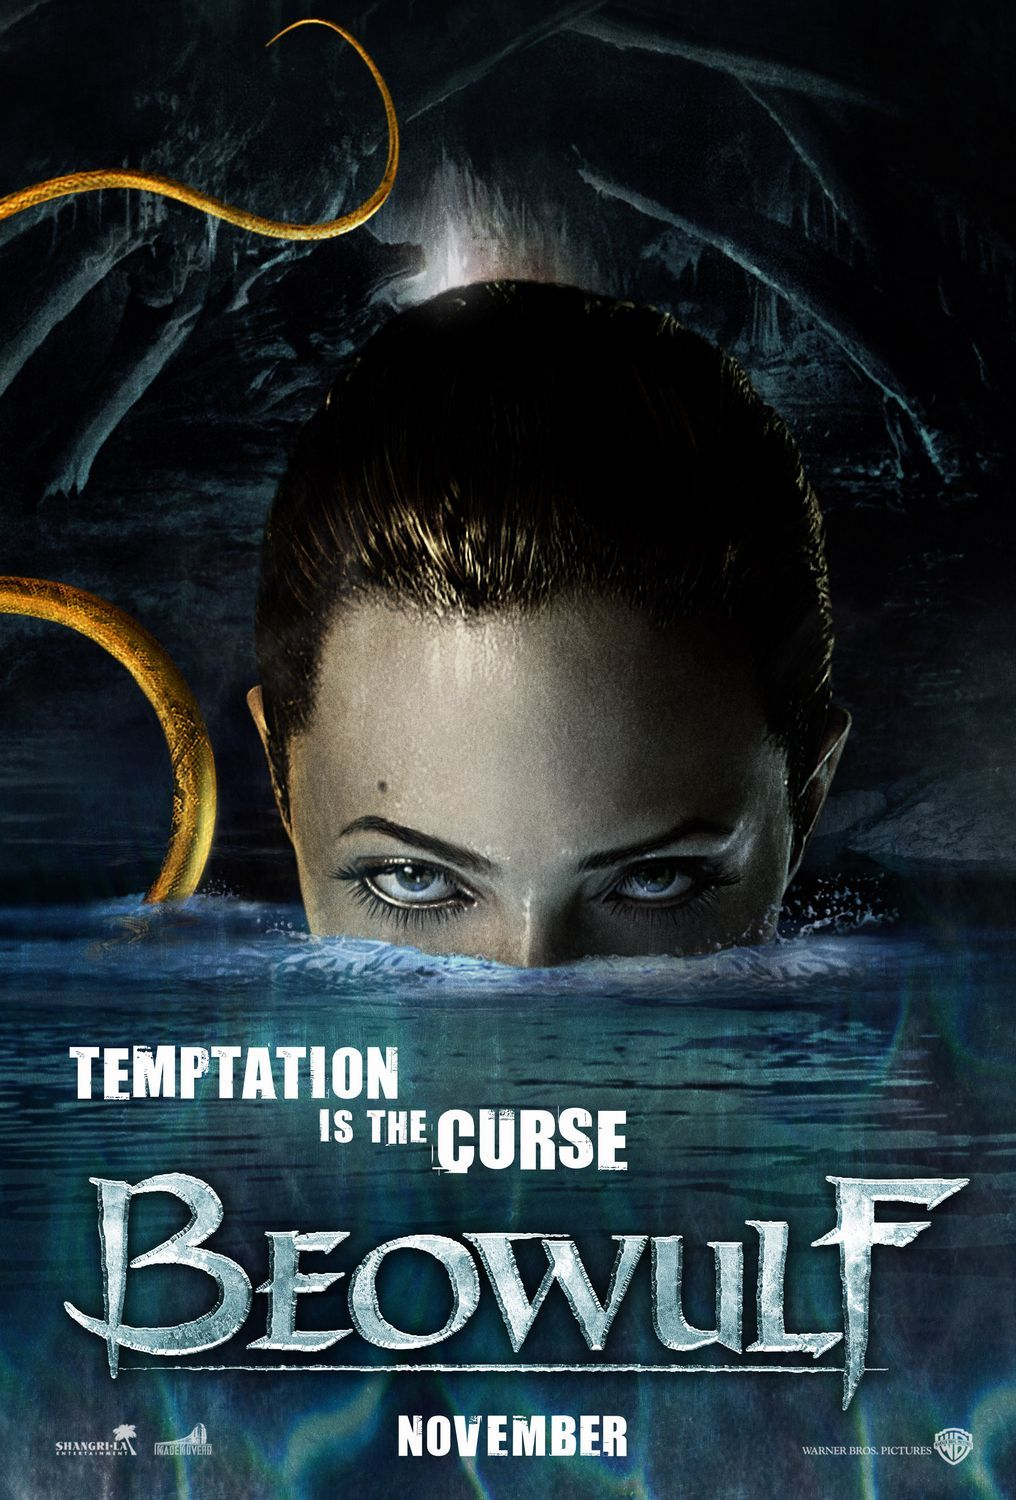 Beowulf I Get To Tech Beowulf This Fall Beowulf Movie Posters